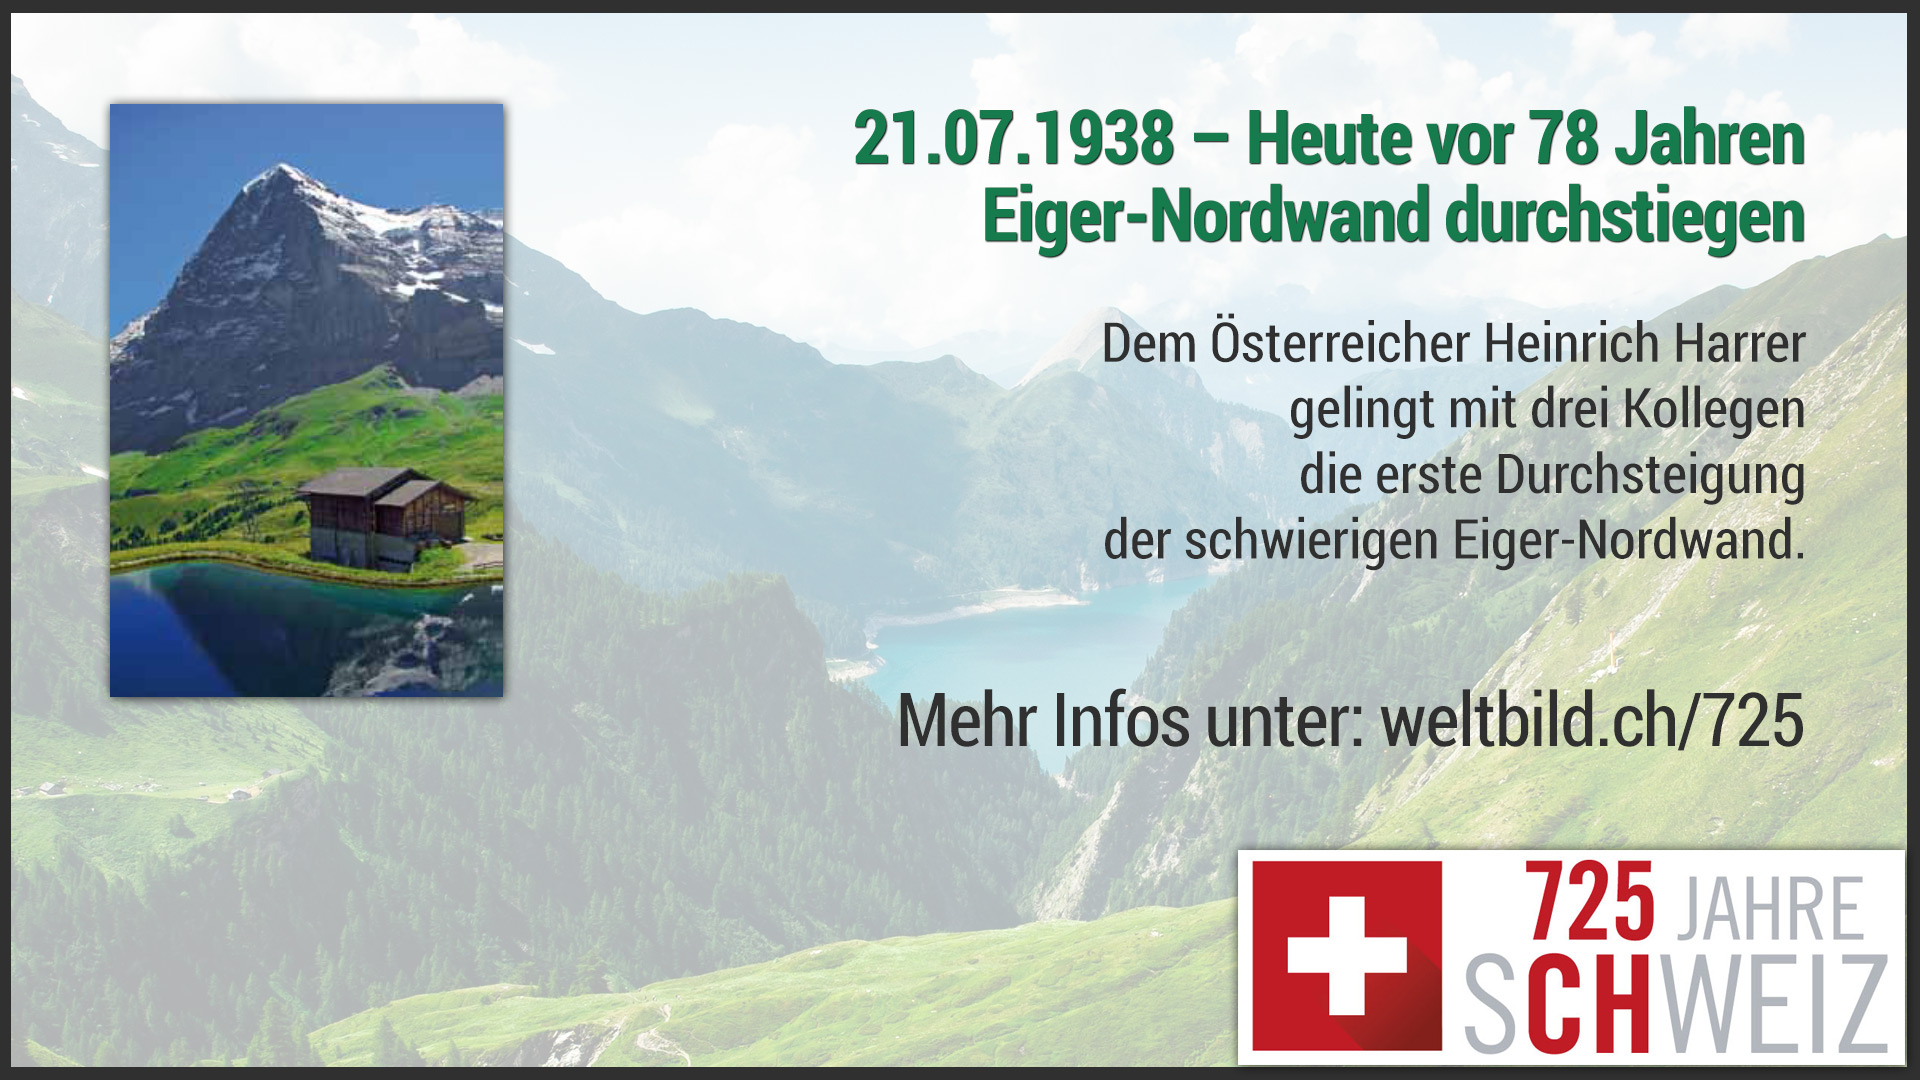 instore_160721_eiger-nordwand01_ch